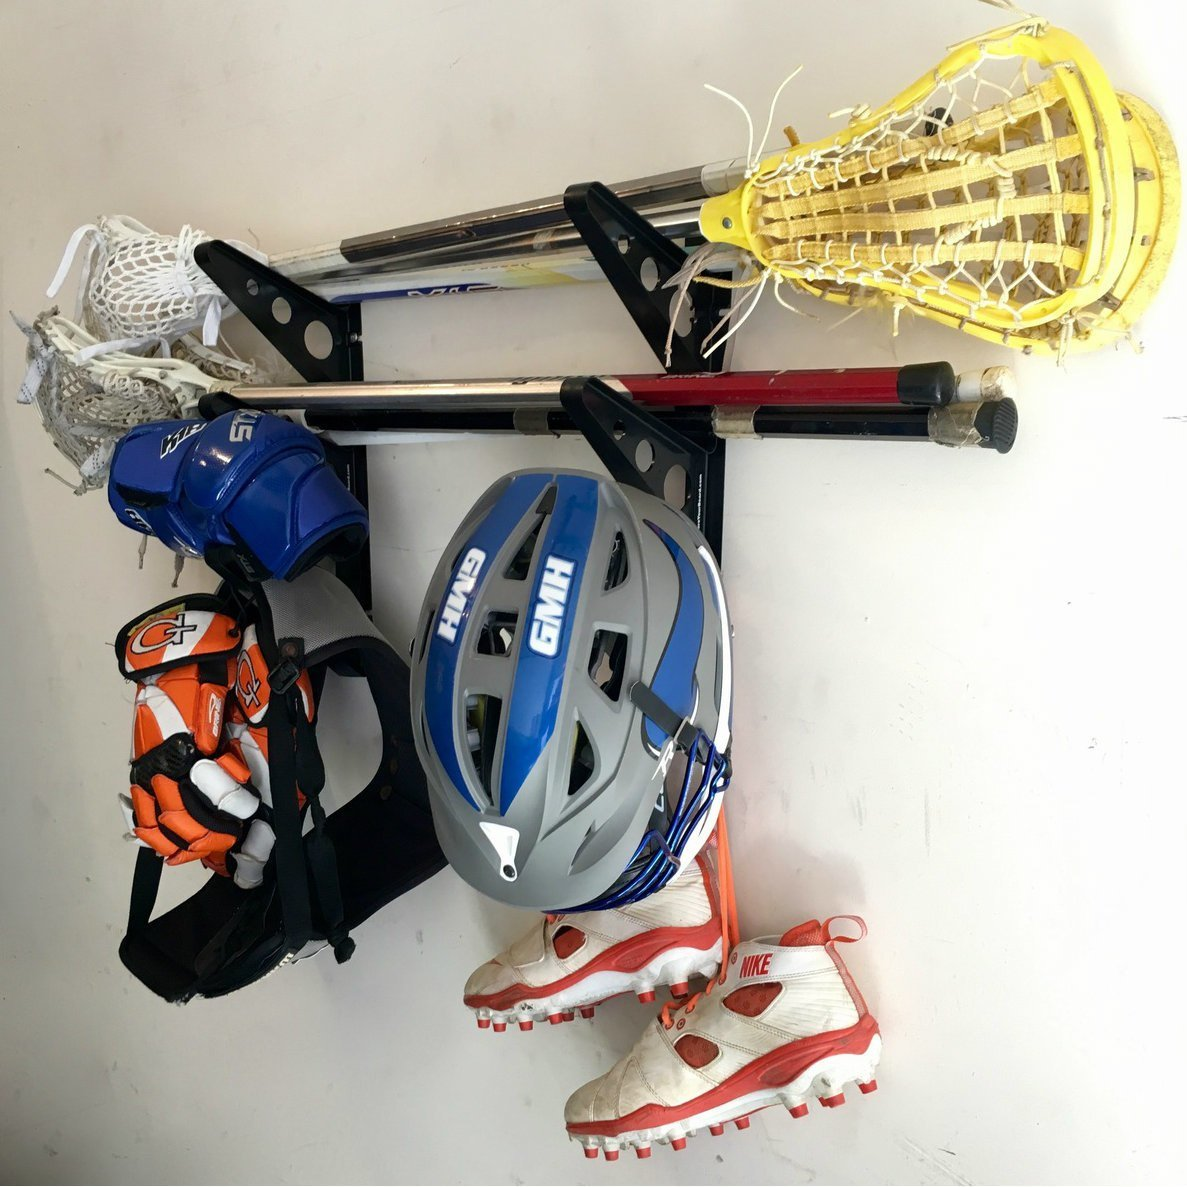 Lacrosse Stick Wall Storage Rack - Lax Sticks, Pads and Equipment Home & Garage Mount by StoreYourBoard (Image #4)